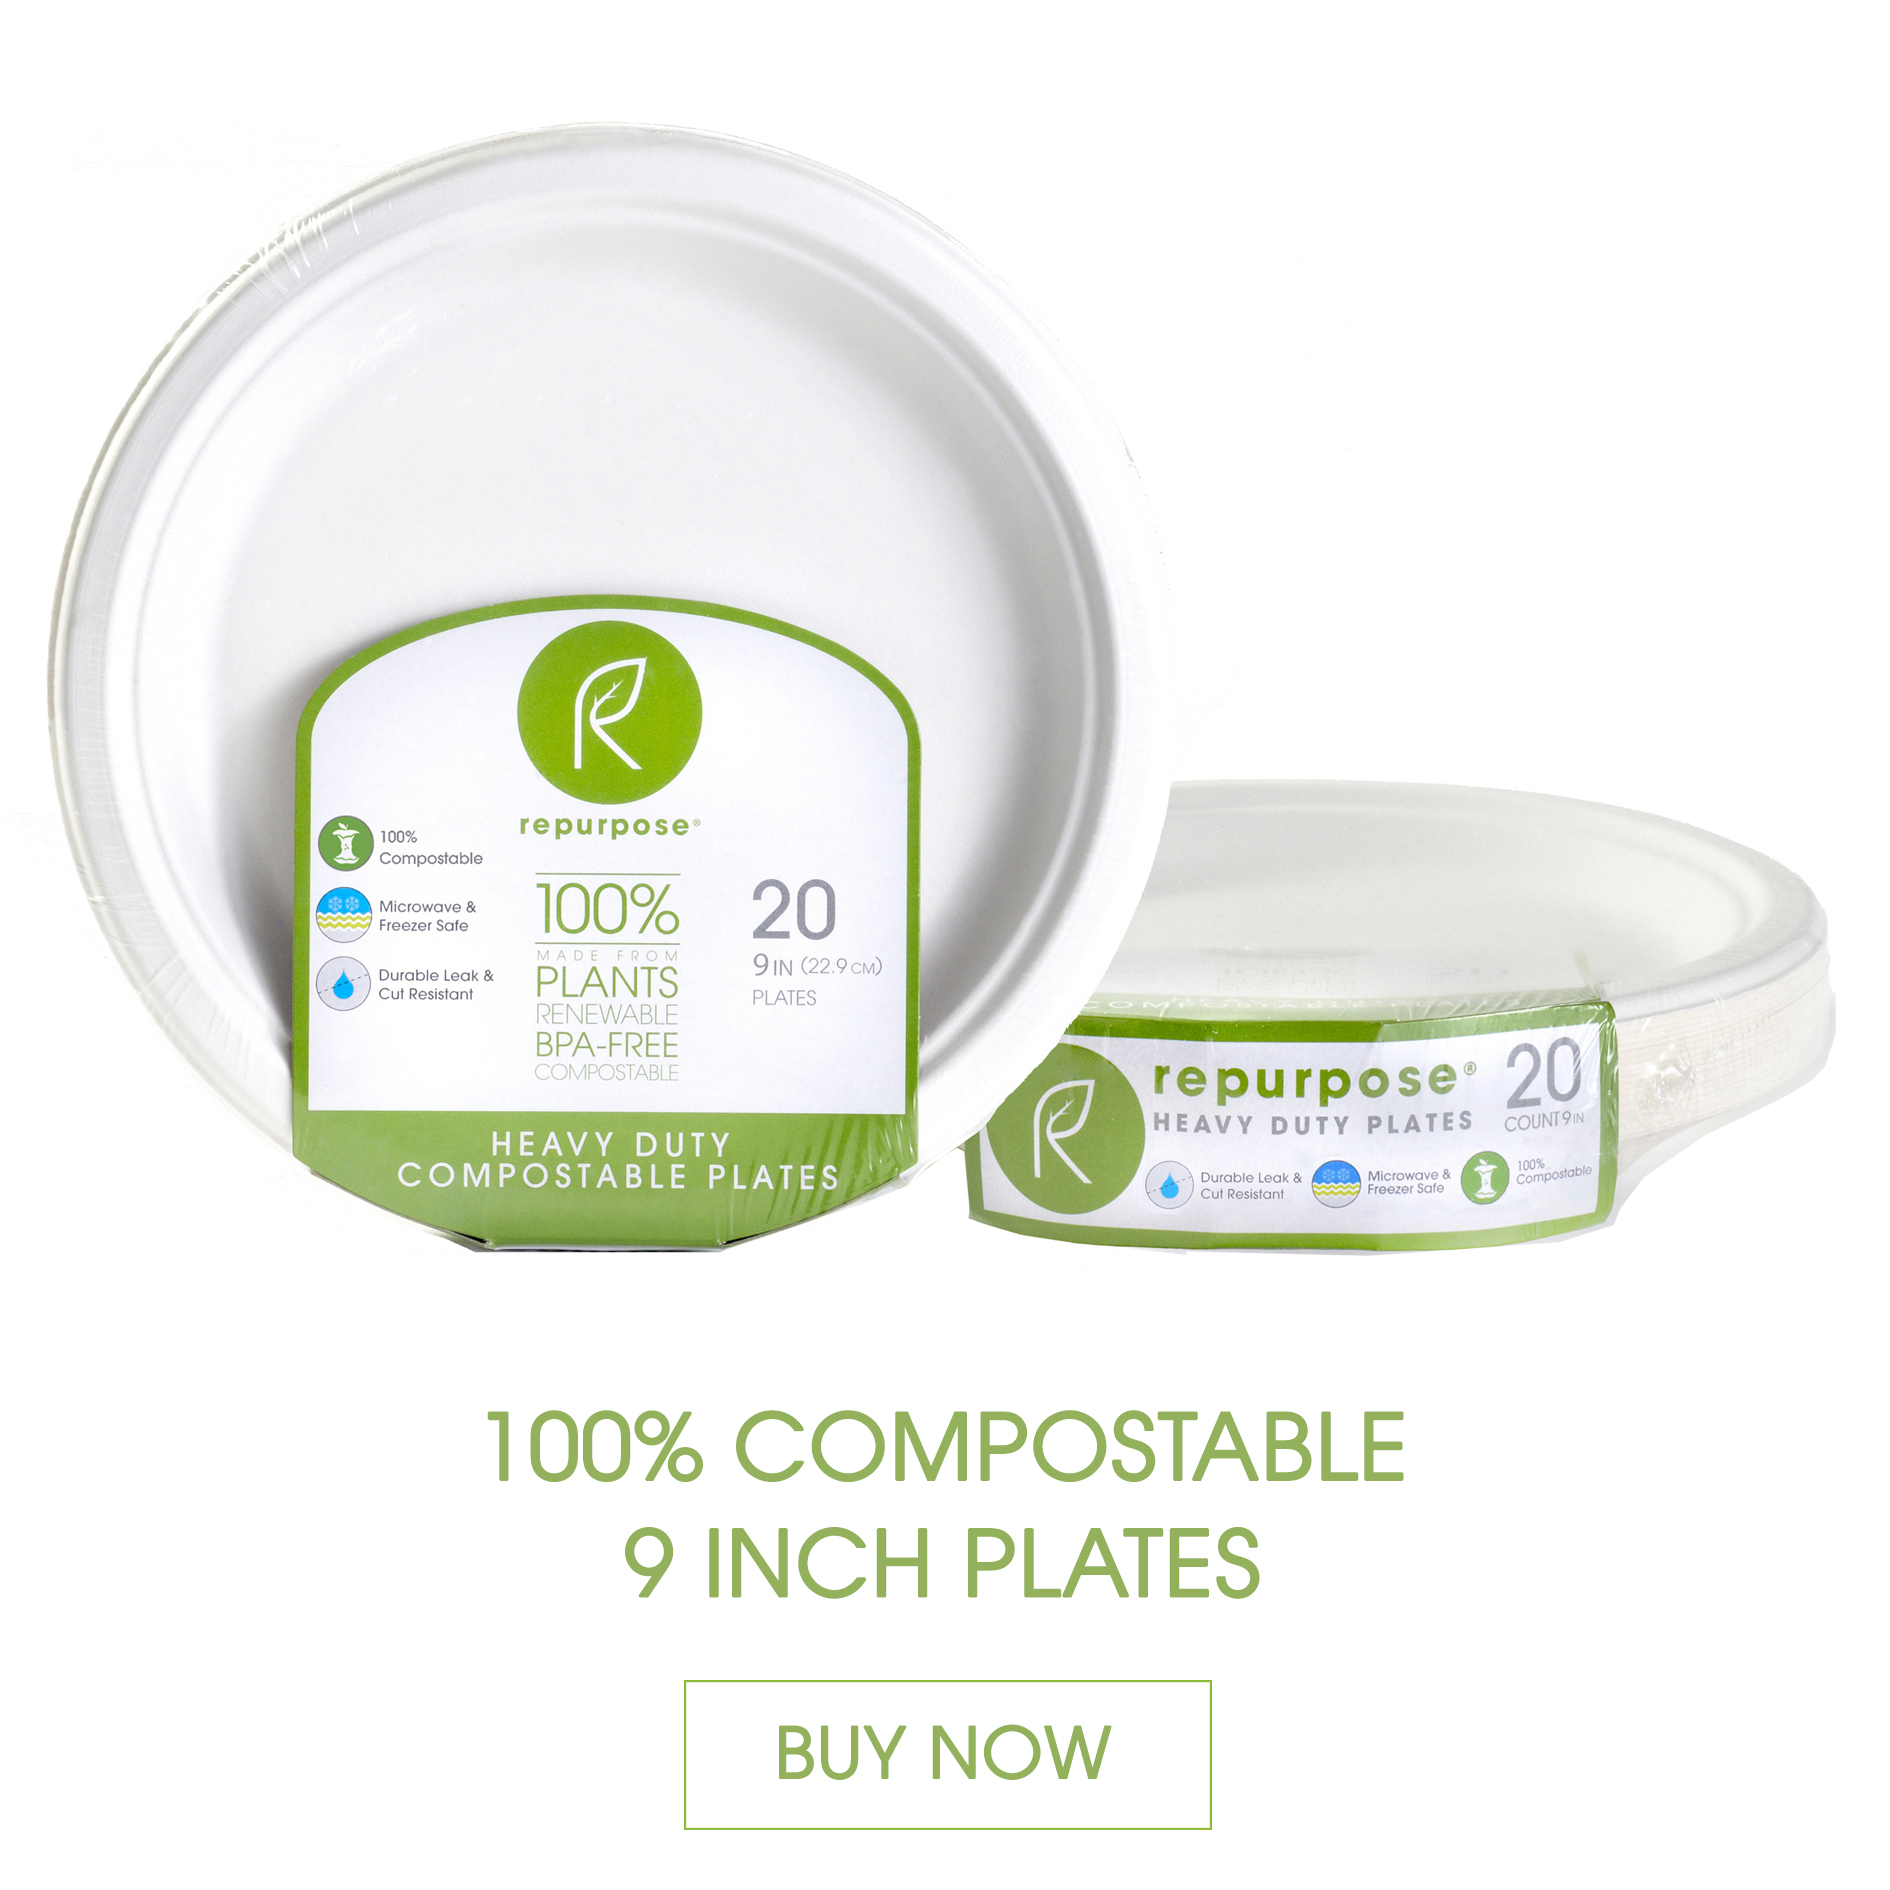 Repurpose Plates are made 100% from plants, Chlorine free, renewable and compostable. They are heavy duty and made from renewable materials.